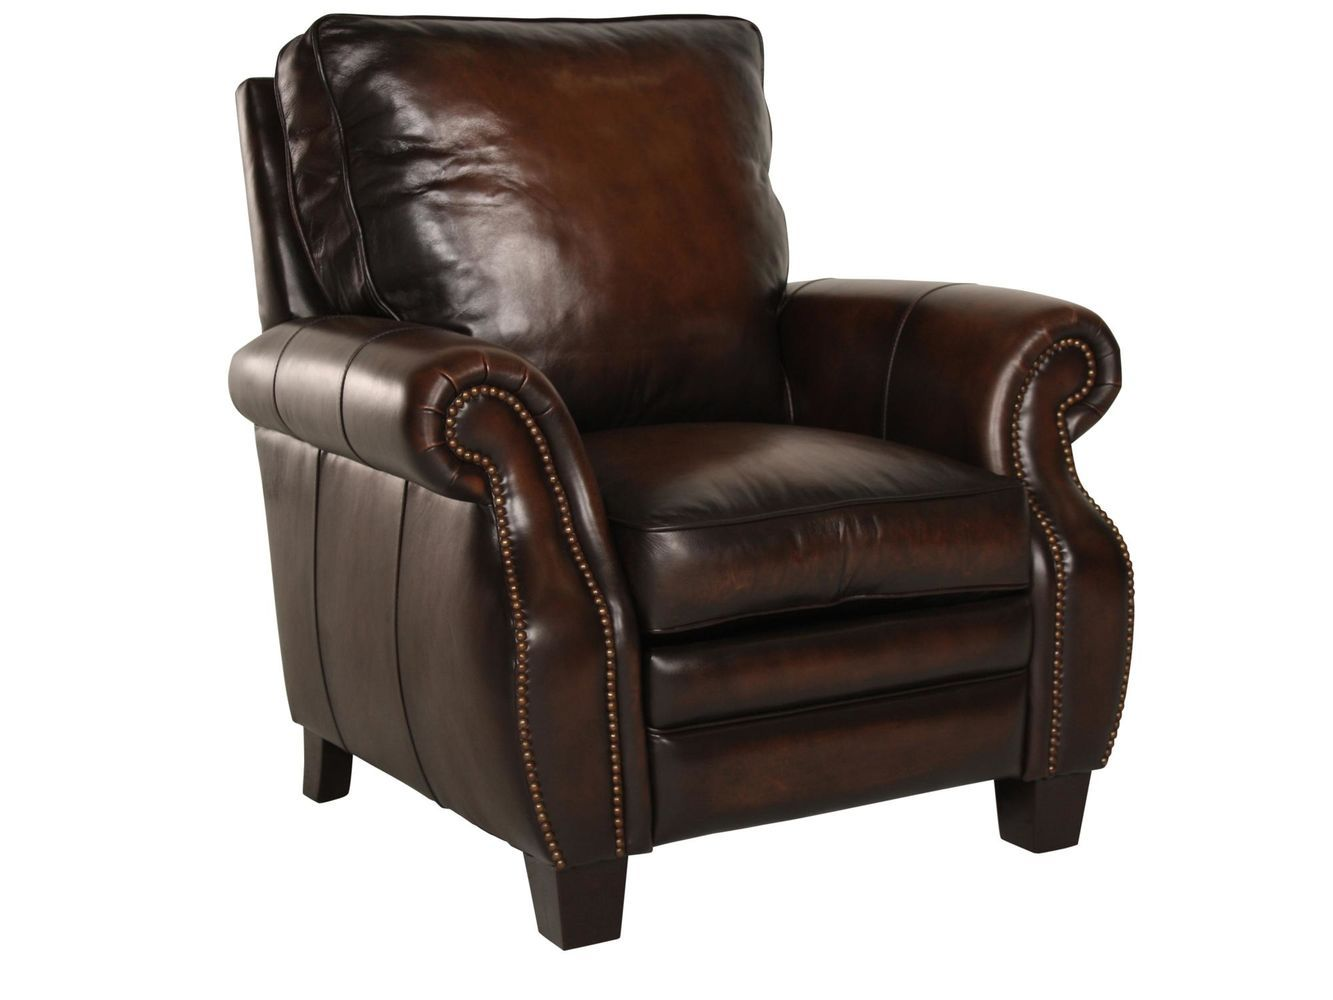 bernhardt leather recliner | furniture | pinterest | recliner